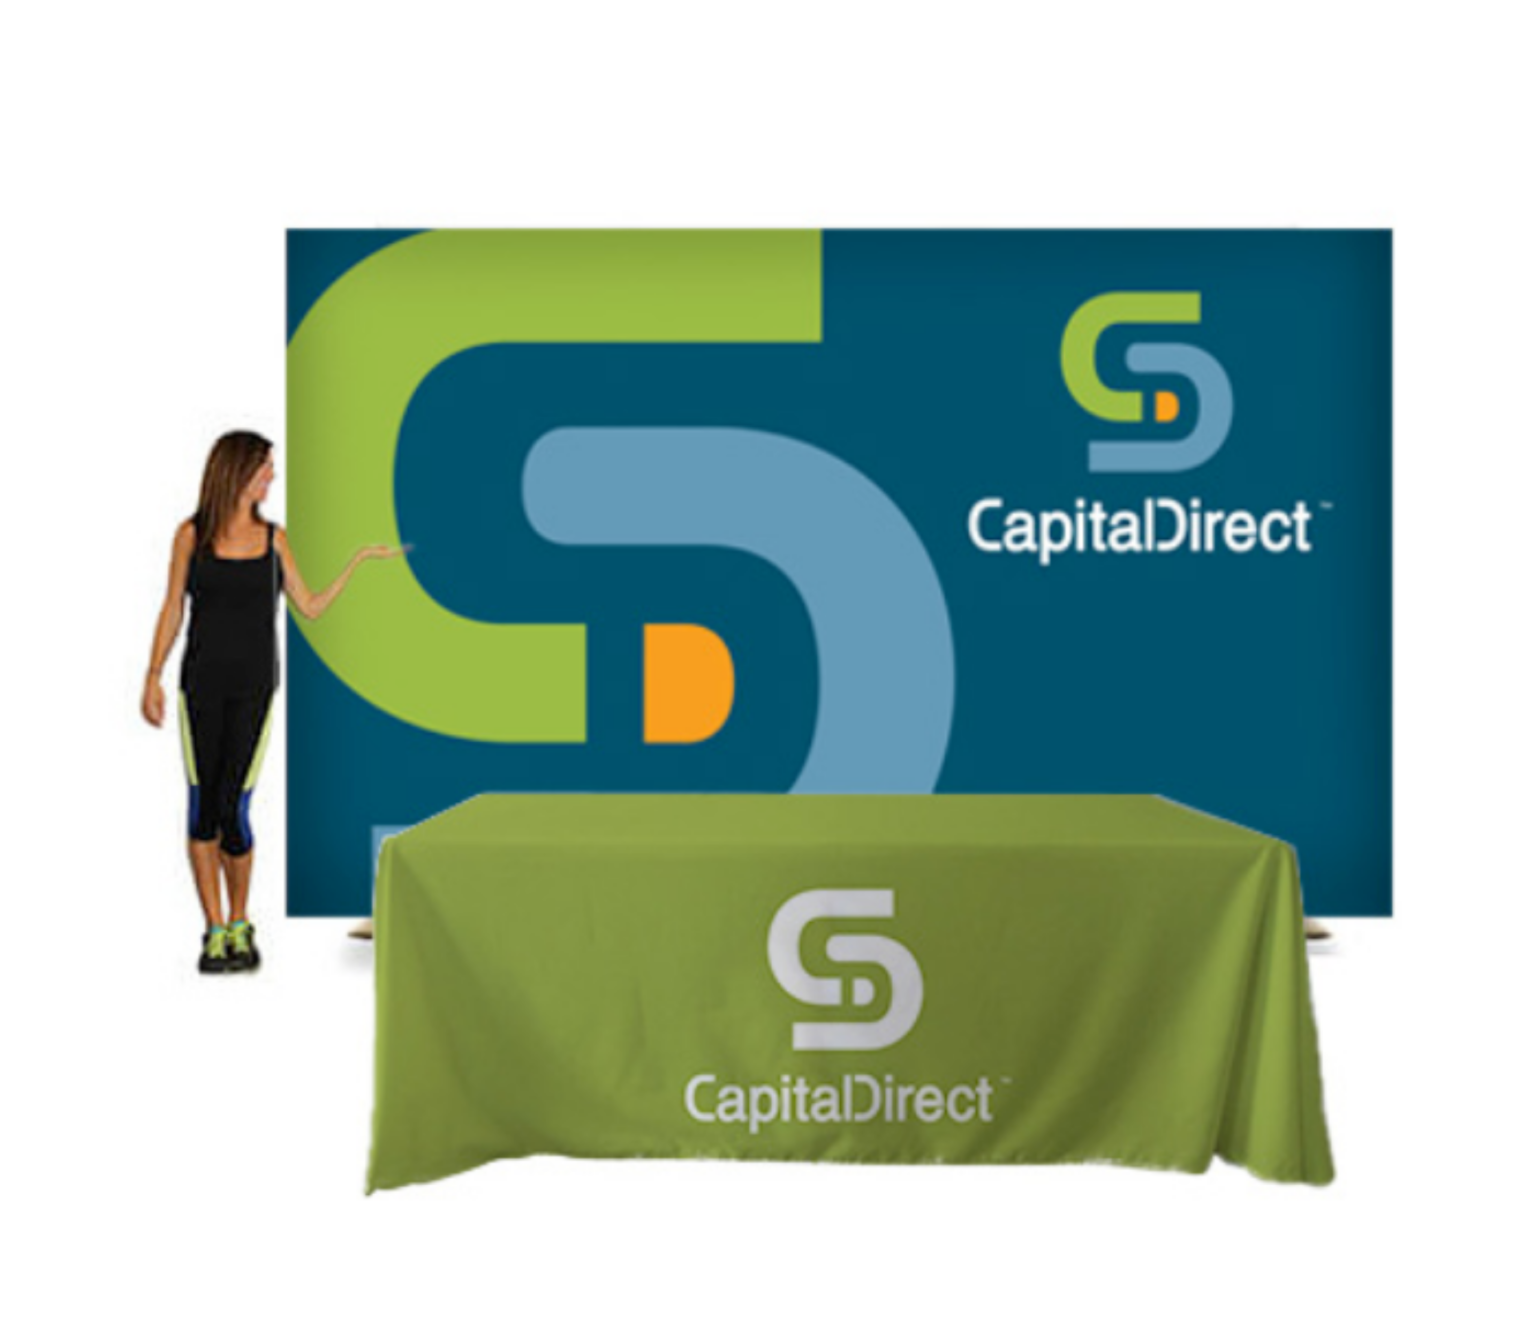 Capital Direct Trade Show